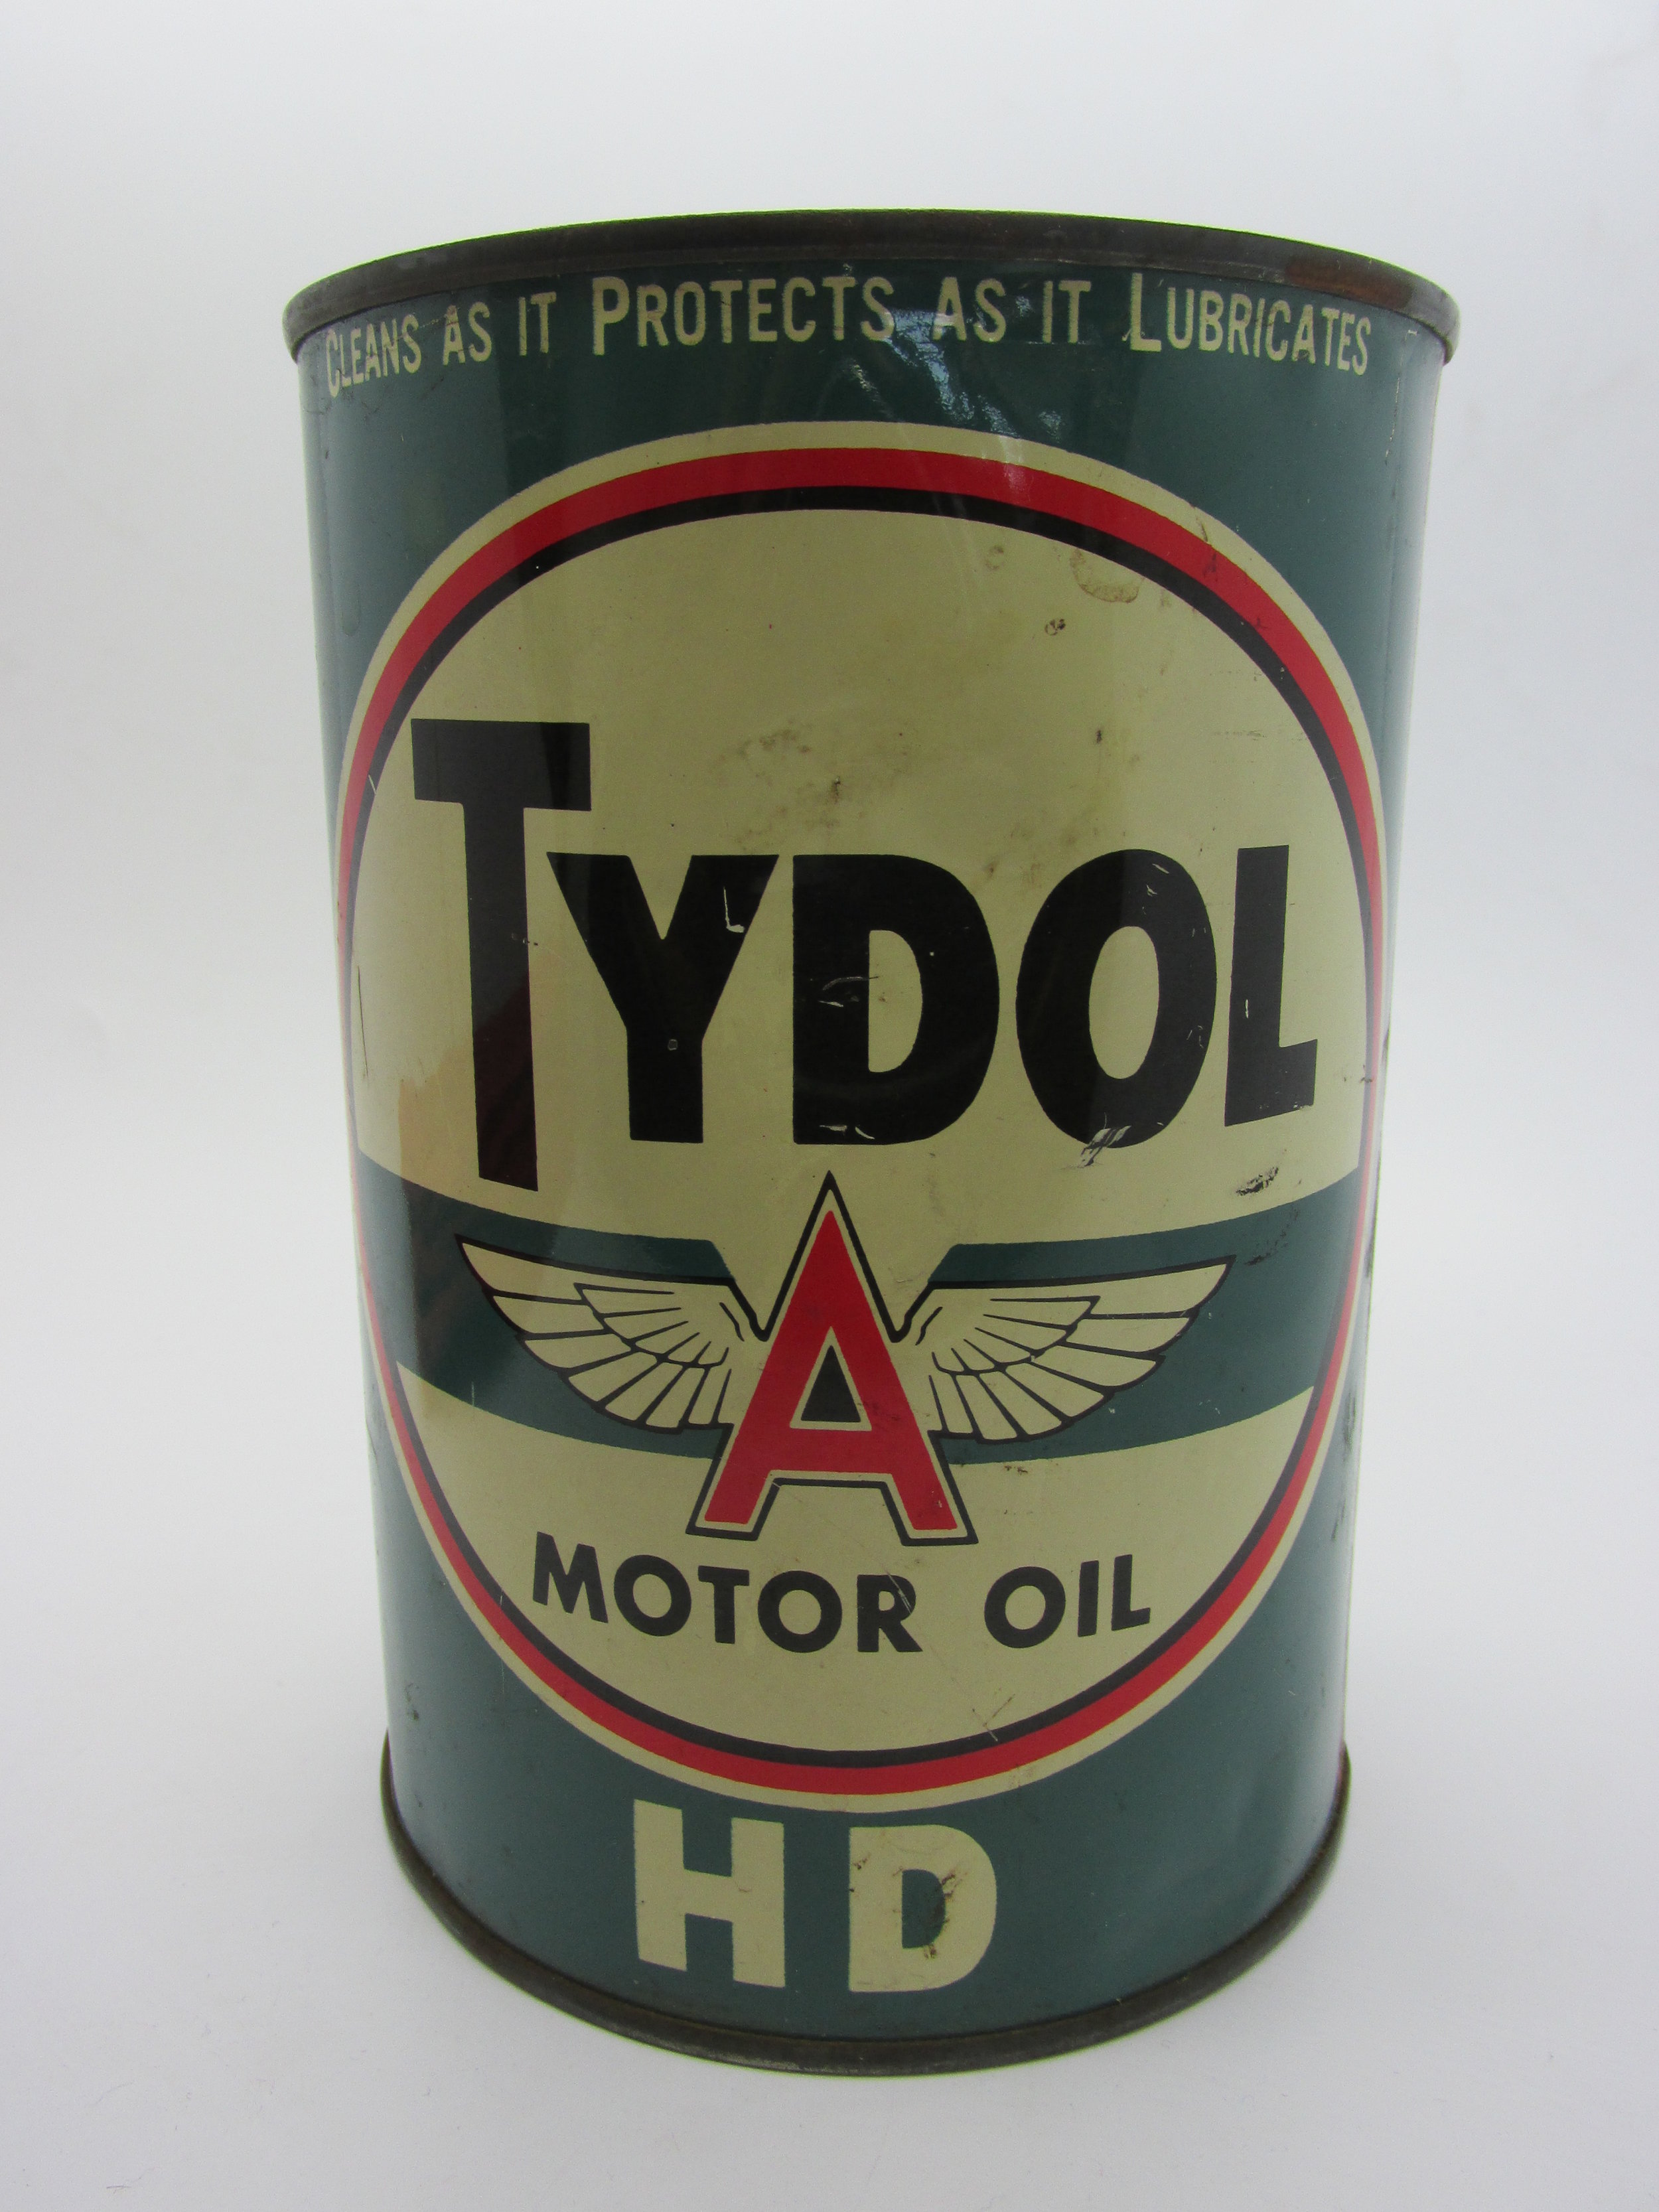 Lets do the CAN CAN! - Look at this vintage beauty! You never see an old oil can like this in such great condition. The Texas Company was launched in 1909 when oil was discovered in Texas. In 1911 Texaco Oil began. They have changed their logo over the years in 1936, 1962 and again in 1981. During the early 1950s, they started using the TYDOL trademark in Vermont. This vintage beauty is unopened, with oil still inside. Available on my ebay site - click here to view.